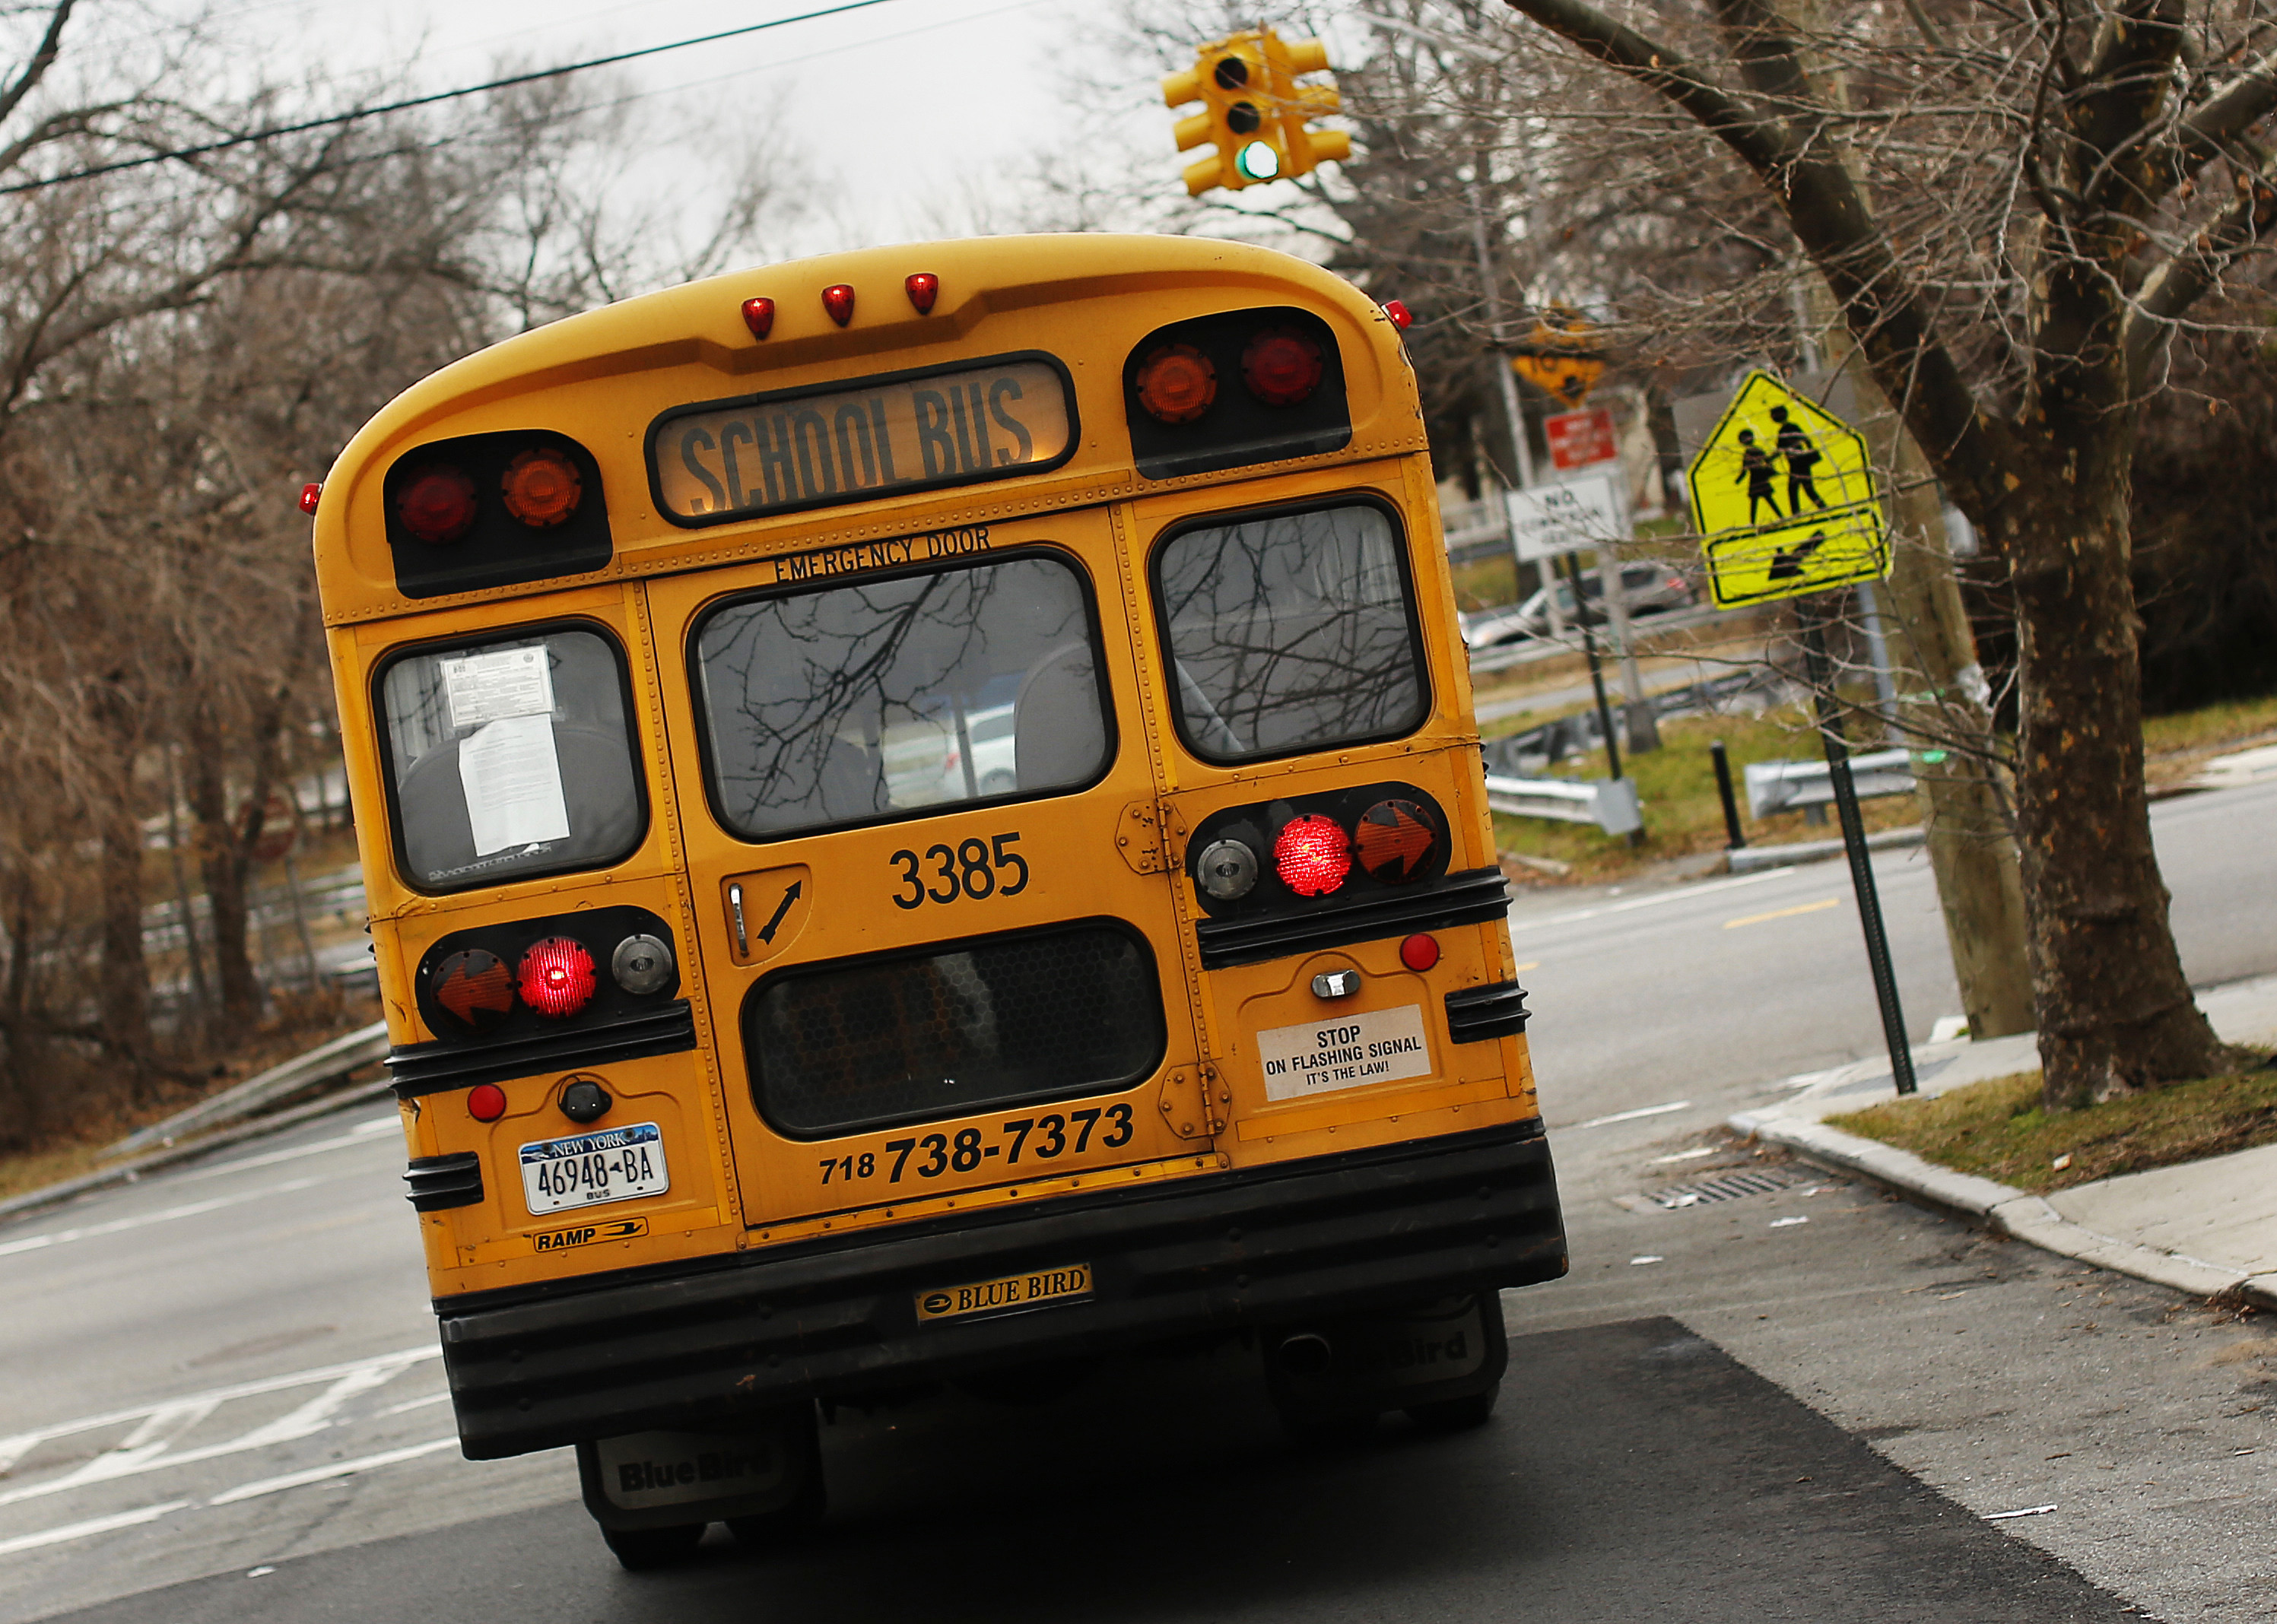 A school bus used for transporting New York City public school students is seen driving down 135th avenue in the Queens borough of New York January 15, 2013. New York City school bus drivers will go on strike on Wednesday, an action that Mayor Michael Bloomberg said would complicate the commute of more than 152,000 students in the nation's largest public school system. REUTERS/Shannon Stapleton (UNITED STATES - Tags: EDUCATION CIVIL UNREST) - GM1E91G07A901